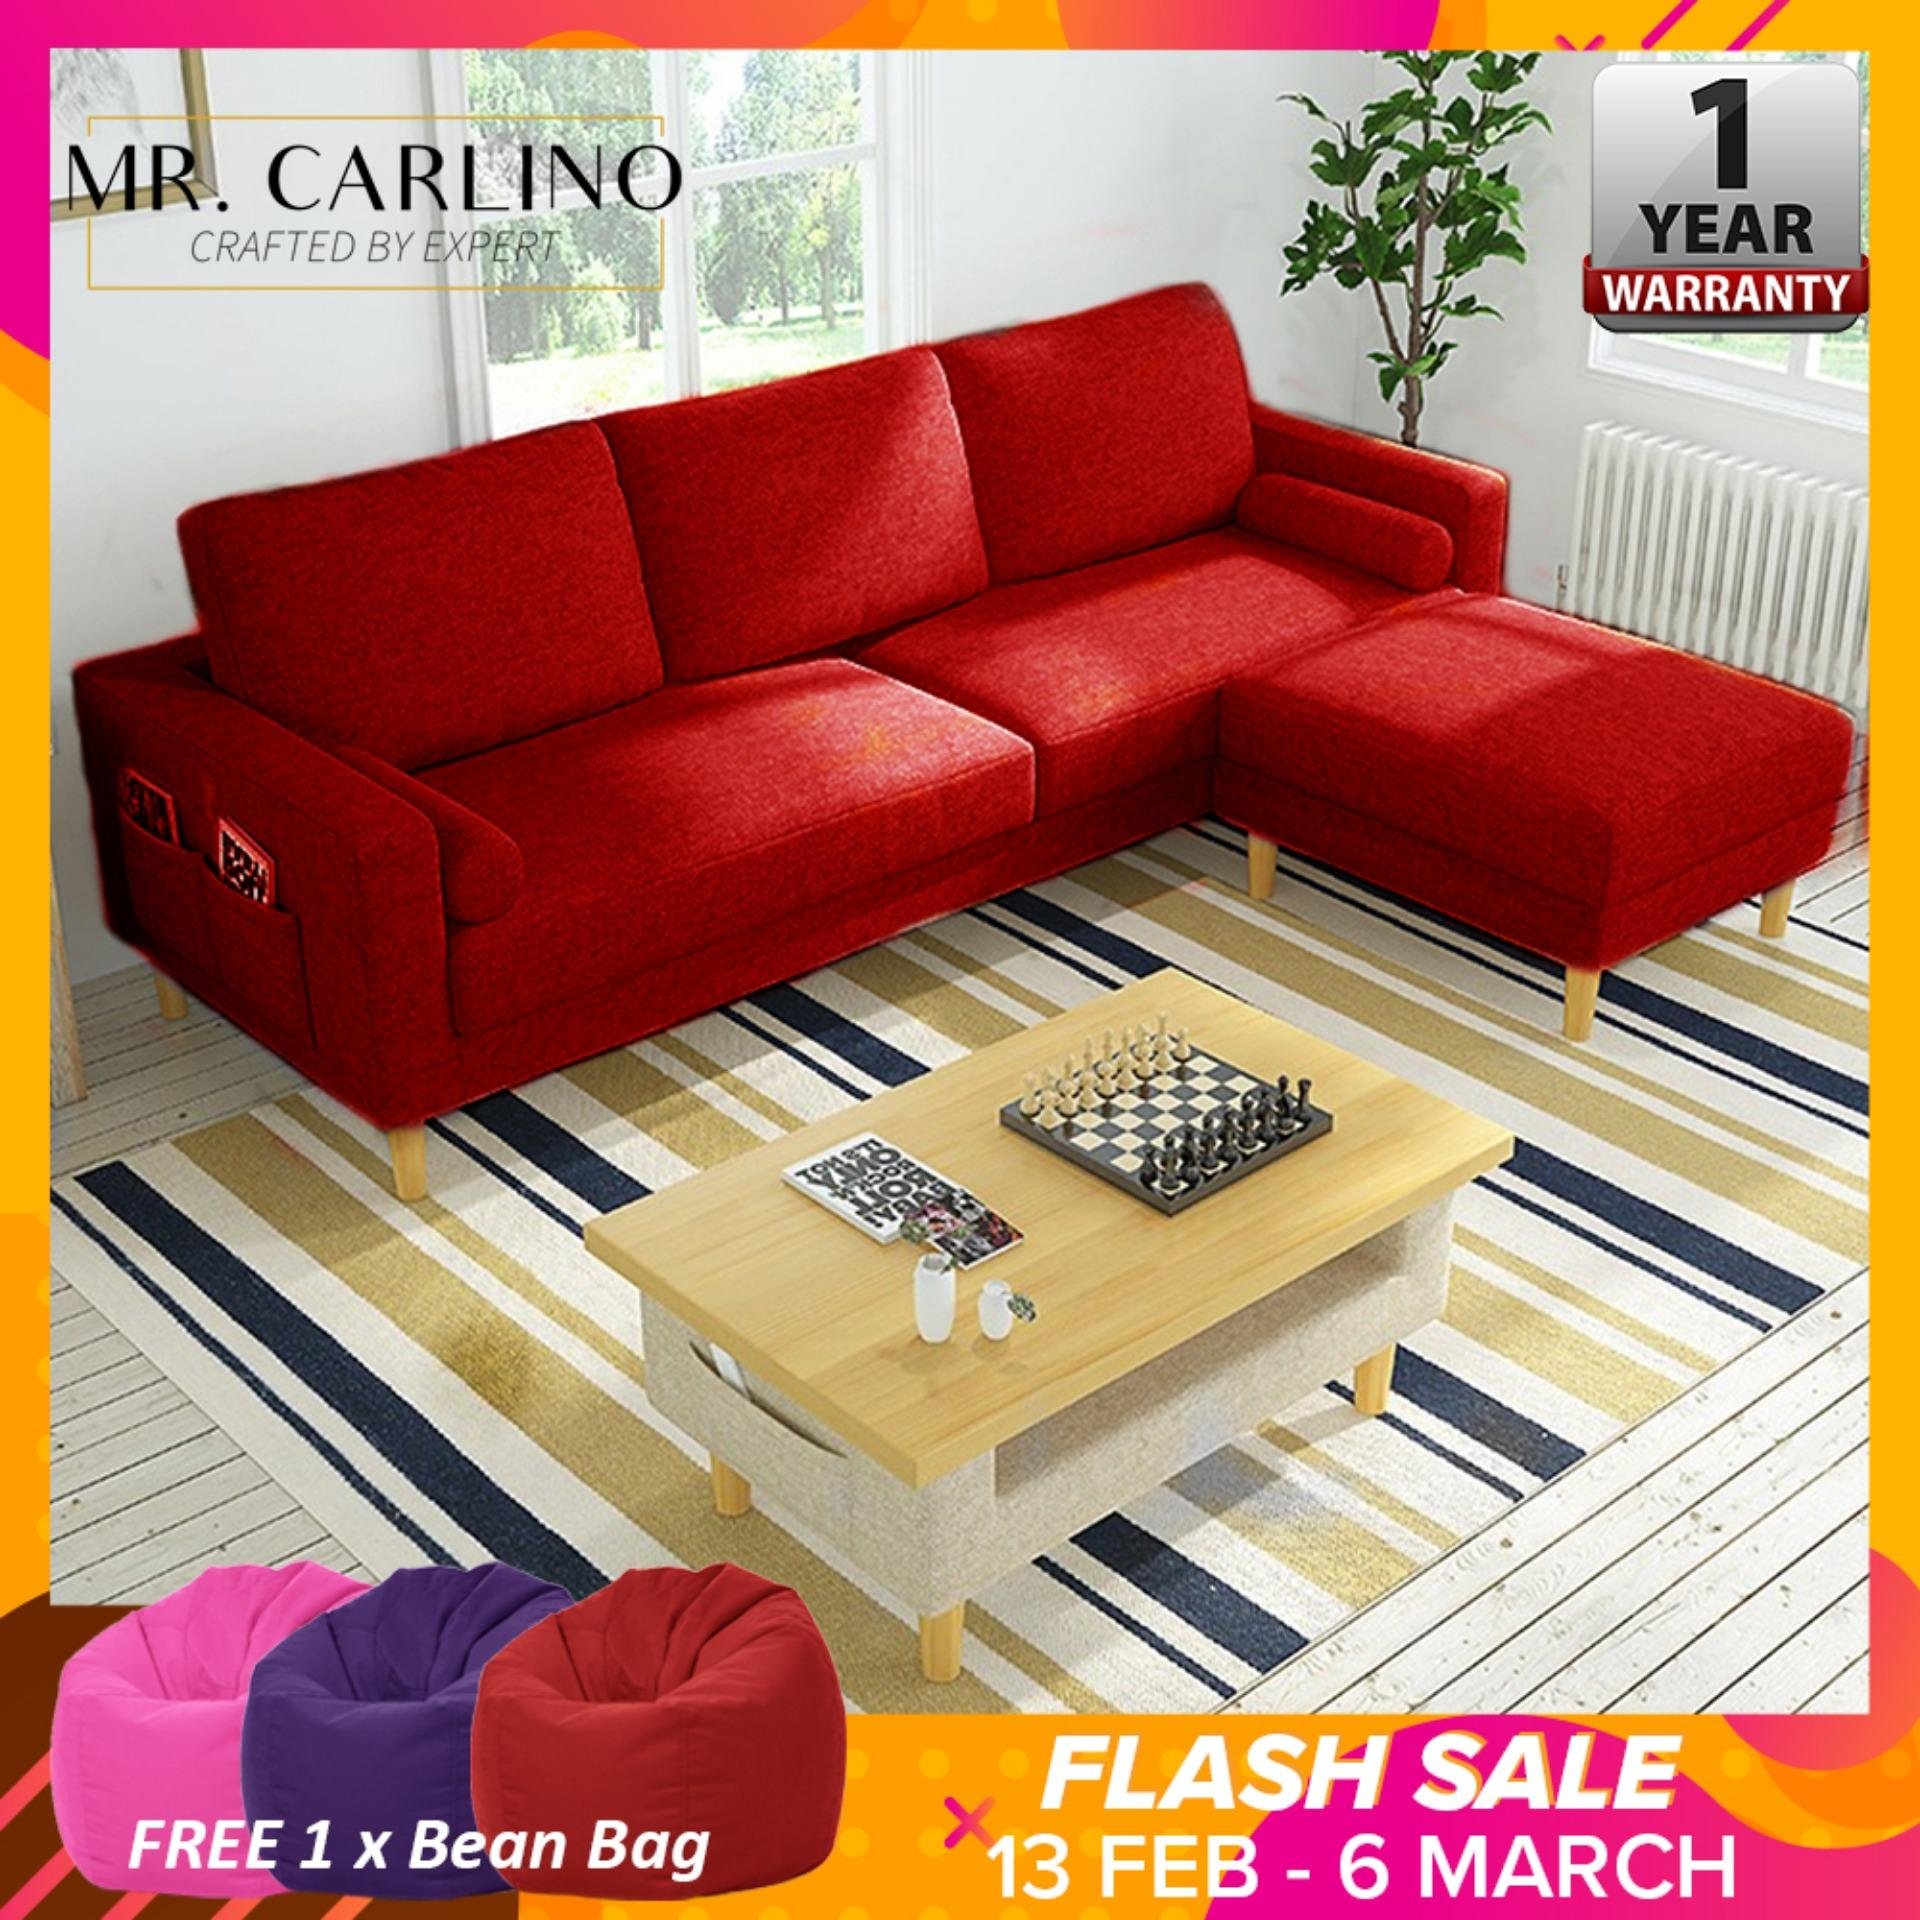 VARGAS 3 Seater Canvas Cloth Home & Living Room L Shaped Sofa With [ 1 YEAR WARRANTY]